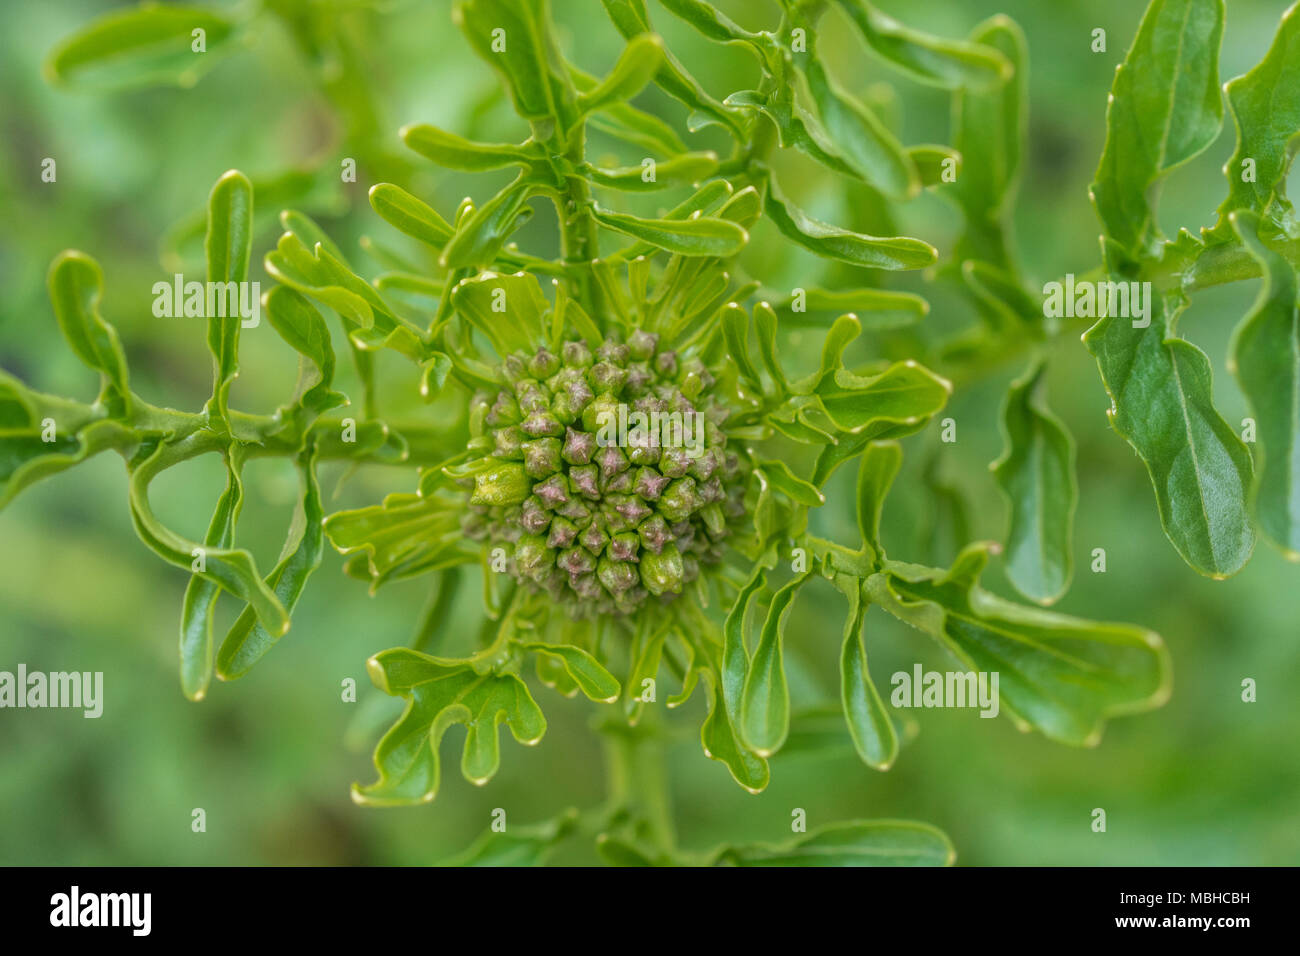 Close up of flowering top of Winter-Cress (Barbarea vulgaris) - once grown as a foodstuff but now regarded as a wild plant and sough by foragers. - Stock Image